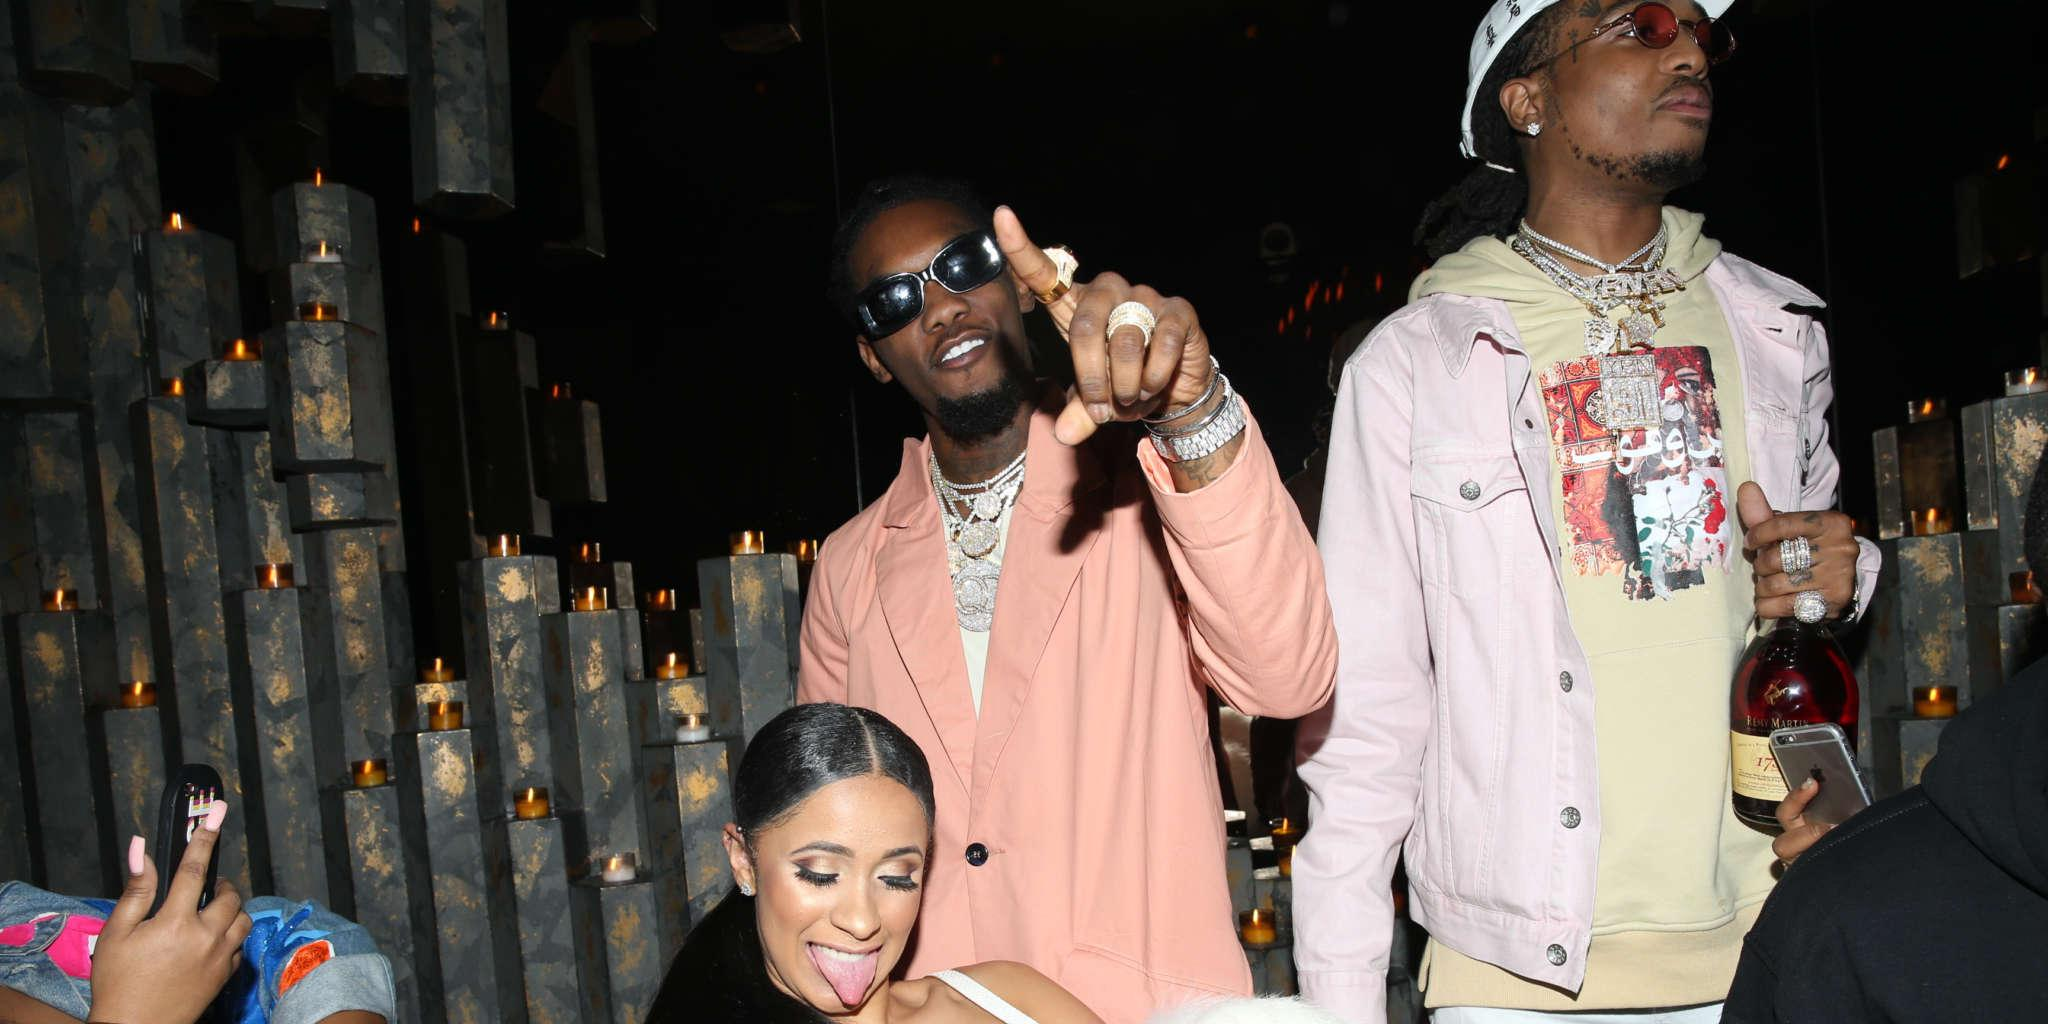 Cardi B Drags Her Fans For Trolling Offset -- Tells Them They Don't Pay Her Bills And Mentions Ariana Grande